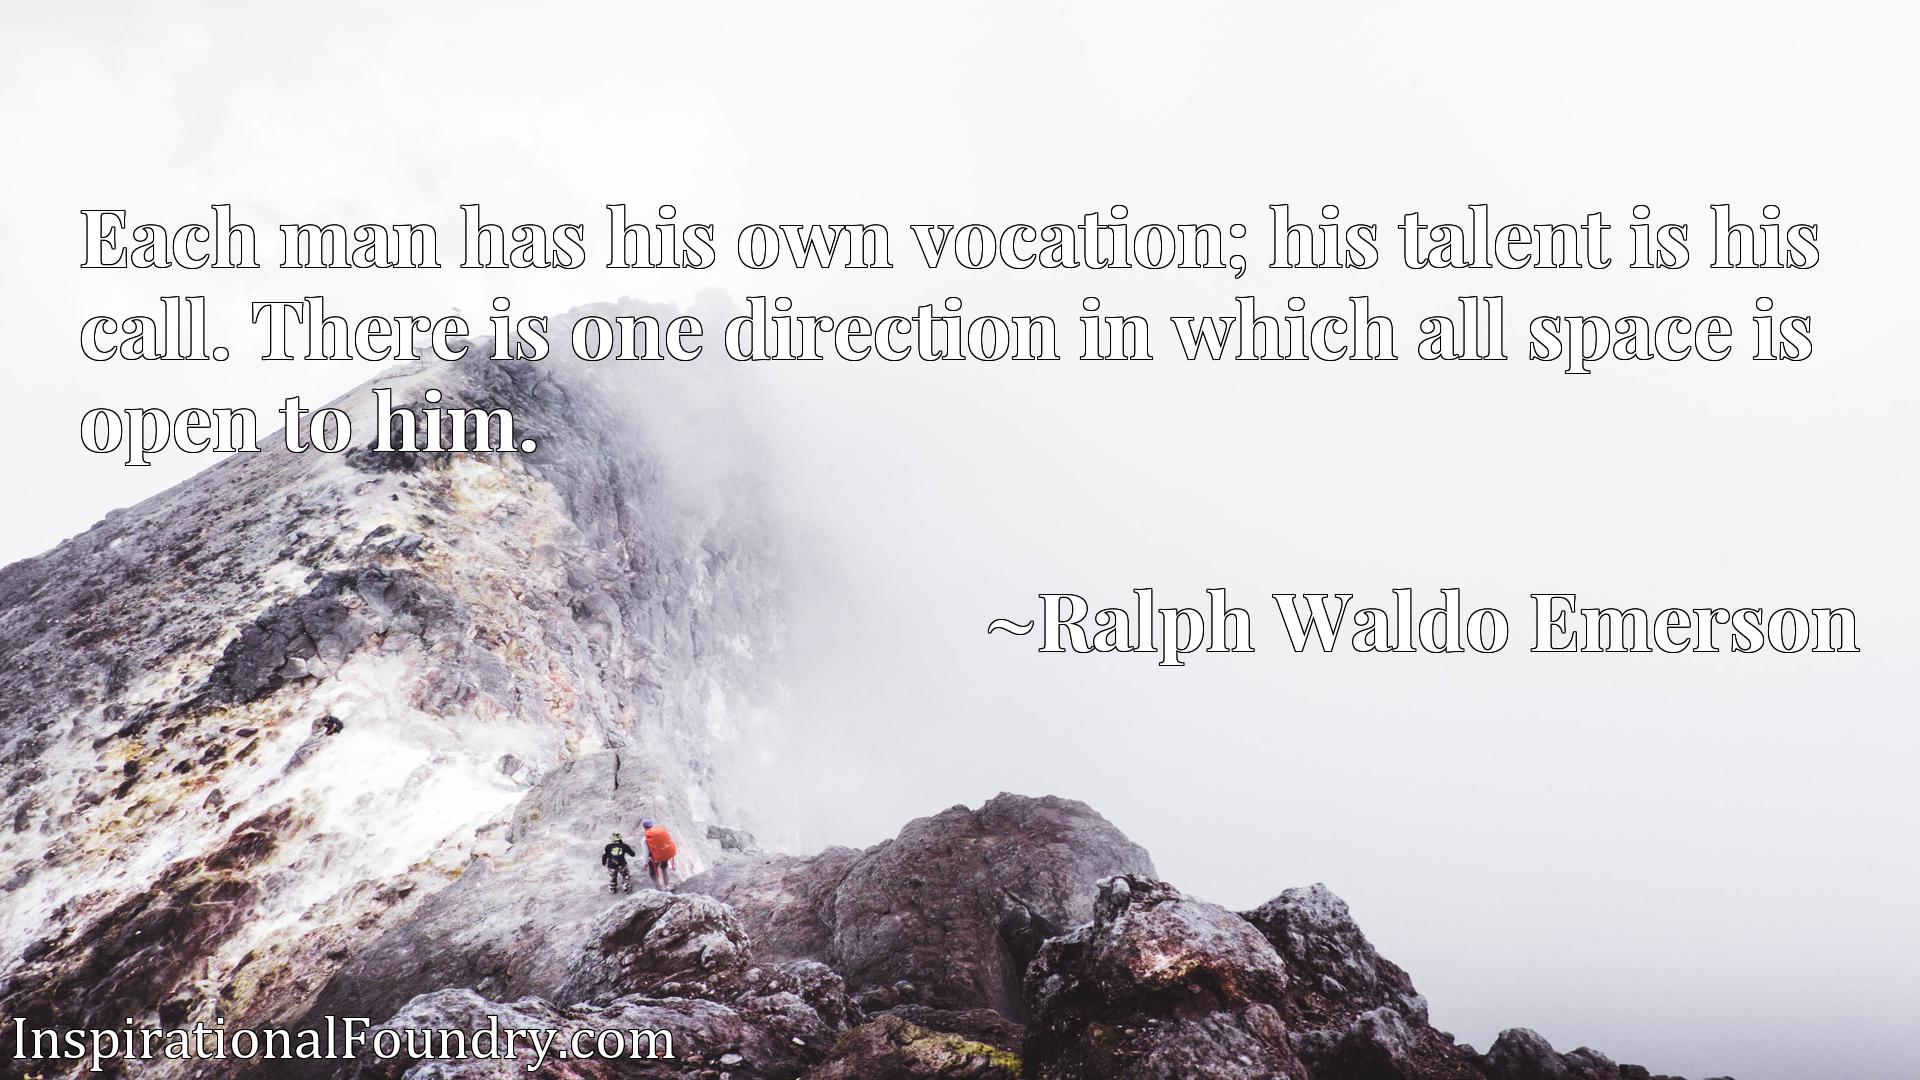 Each man has his own vocation; his talent is his call. There is one direction in which all space is open to him.